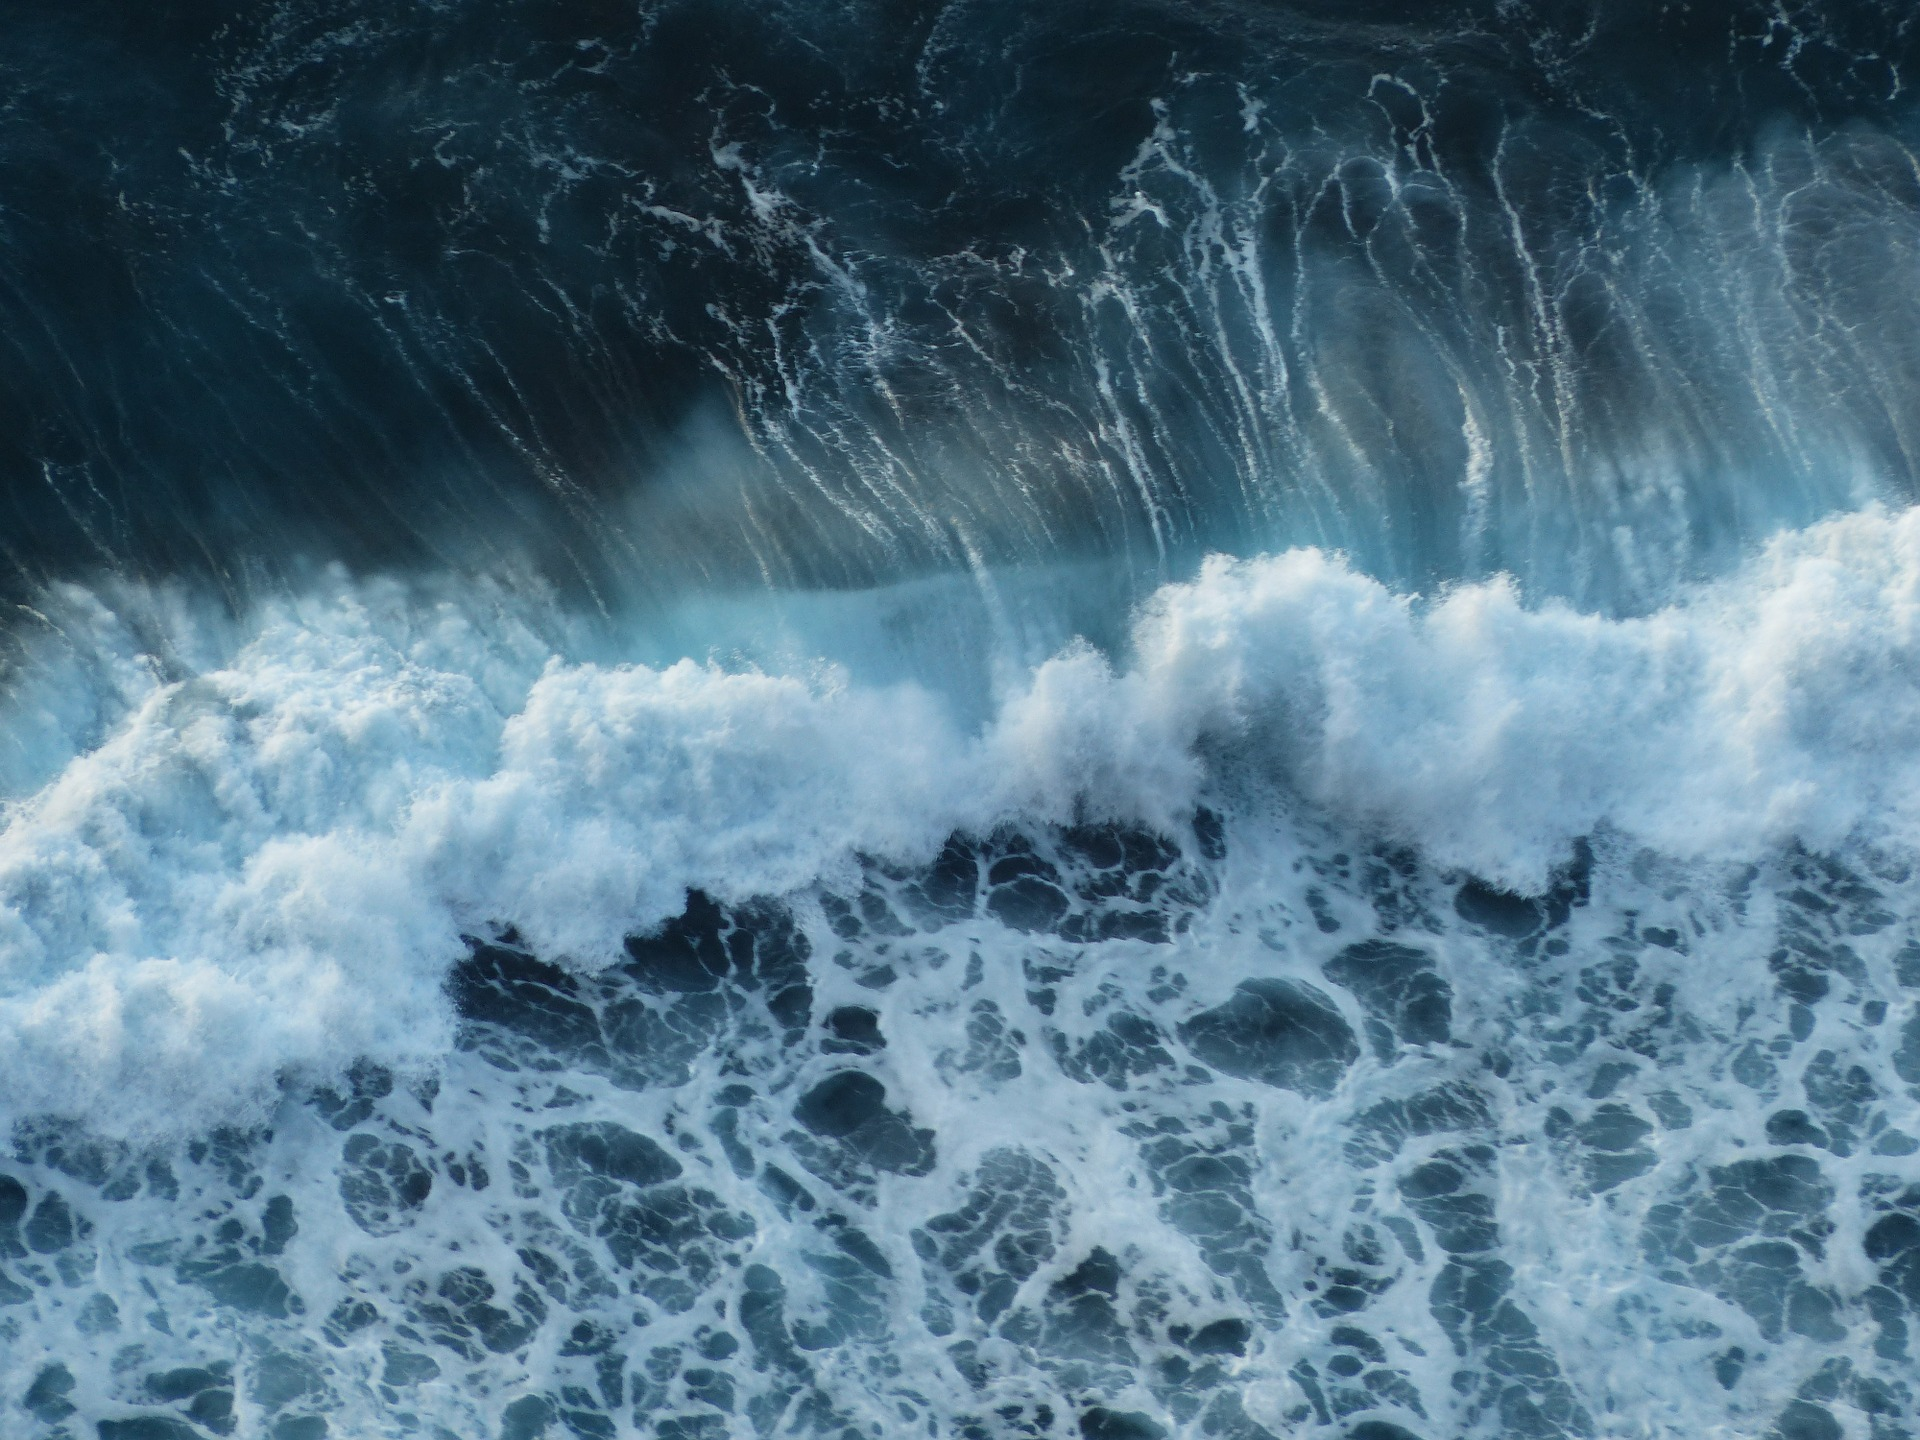 Ocean Waves Explained: How Do They Work? – Underwater Audio